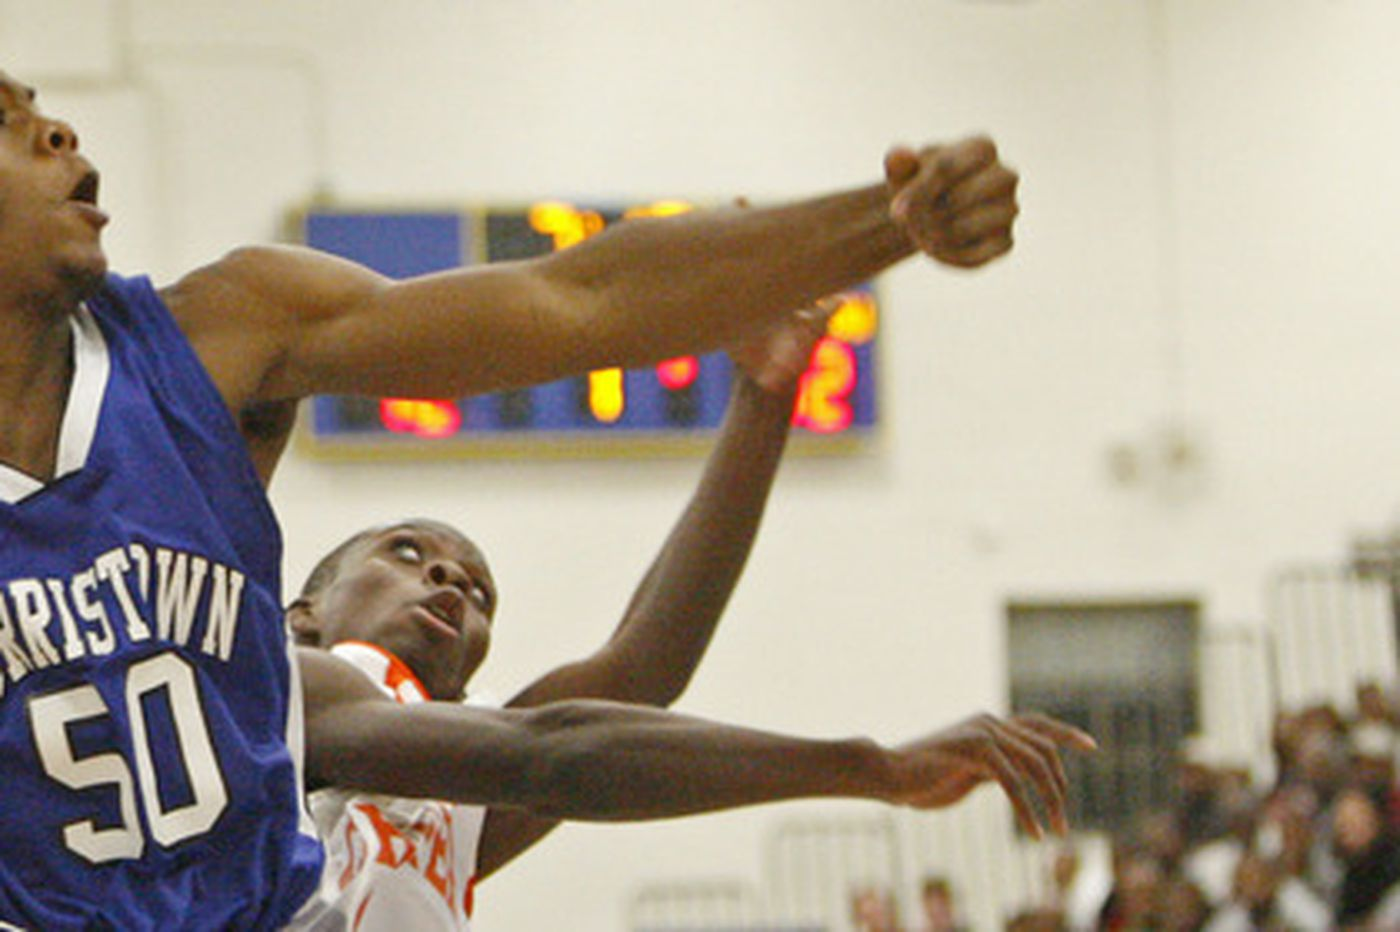 Chester pulls away from Norristown